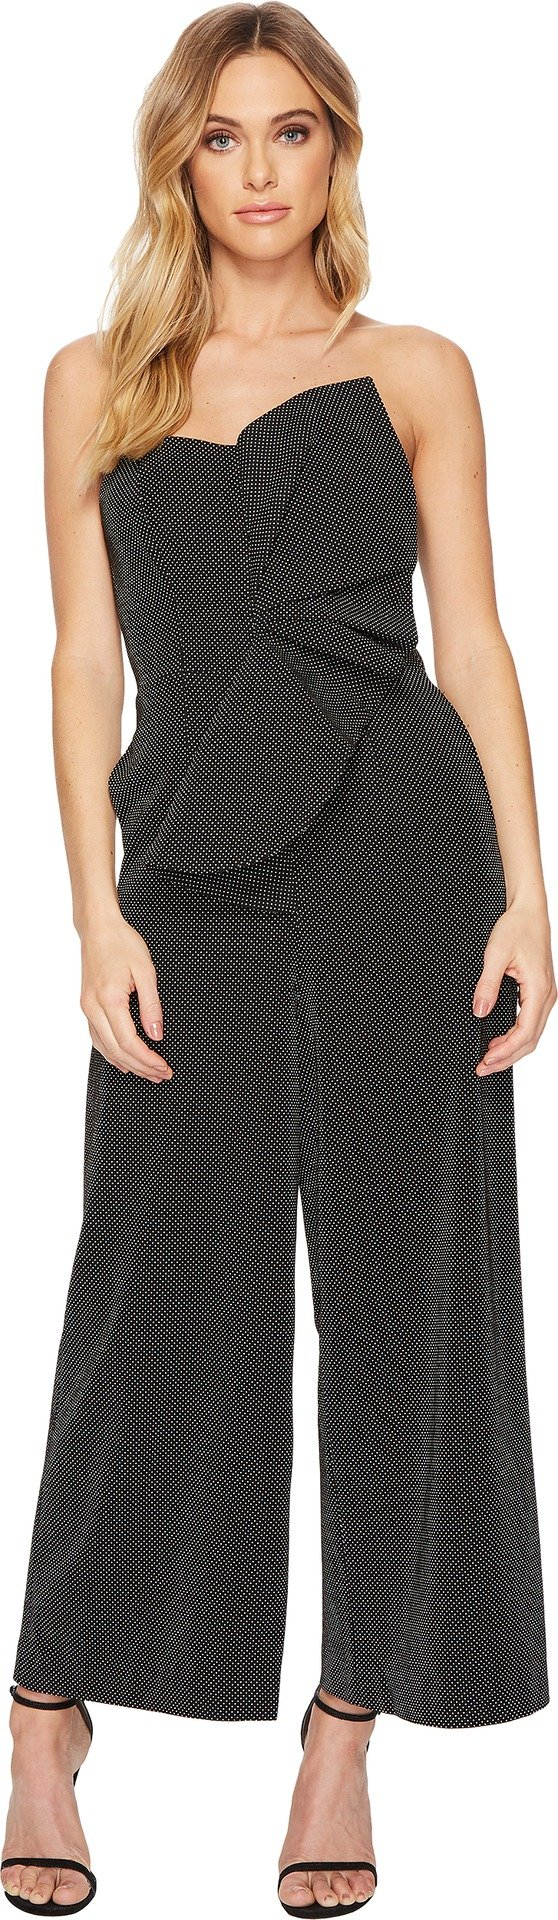 Keepsake The Label Women's Love Light Jumpsuit, Black, M